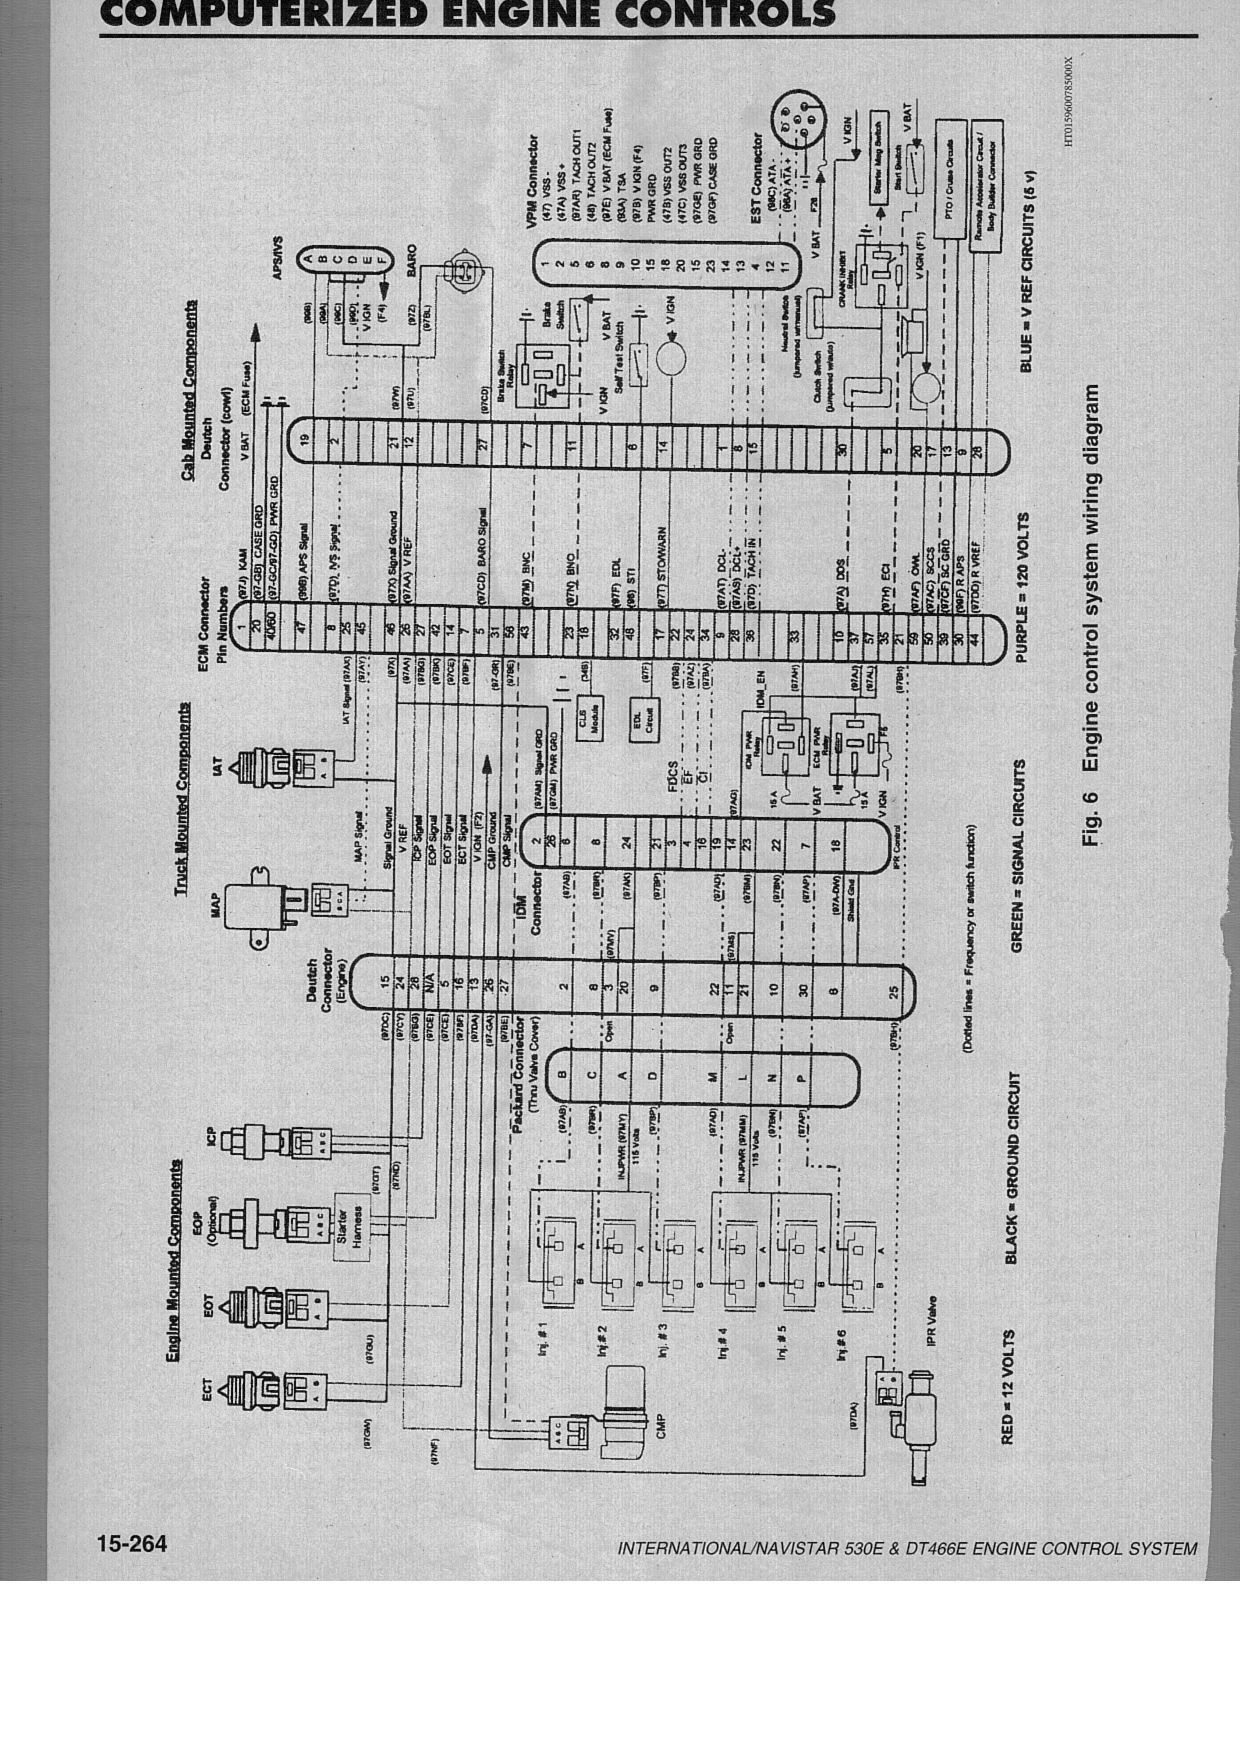 Navistar Ecm Wiring Diagram Books Of Ih 784 International Electrical Diagrams Rh Wiringforall Today